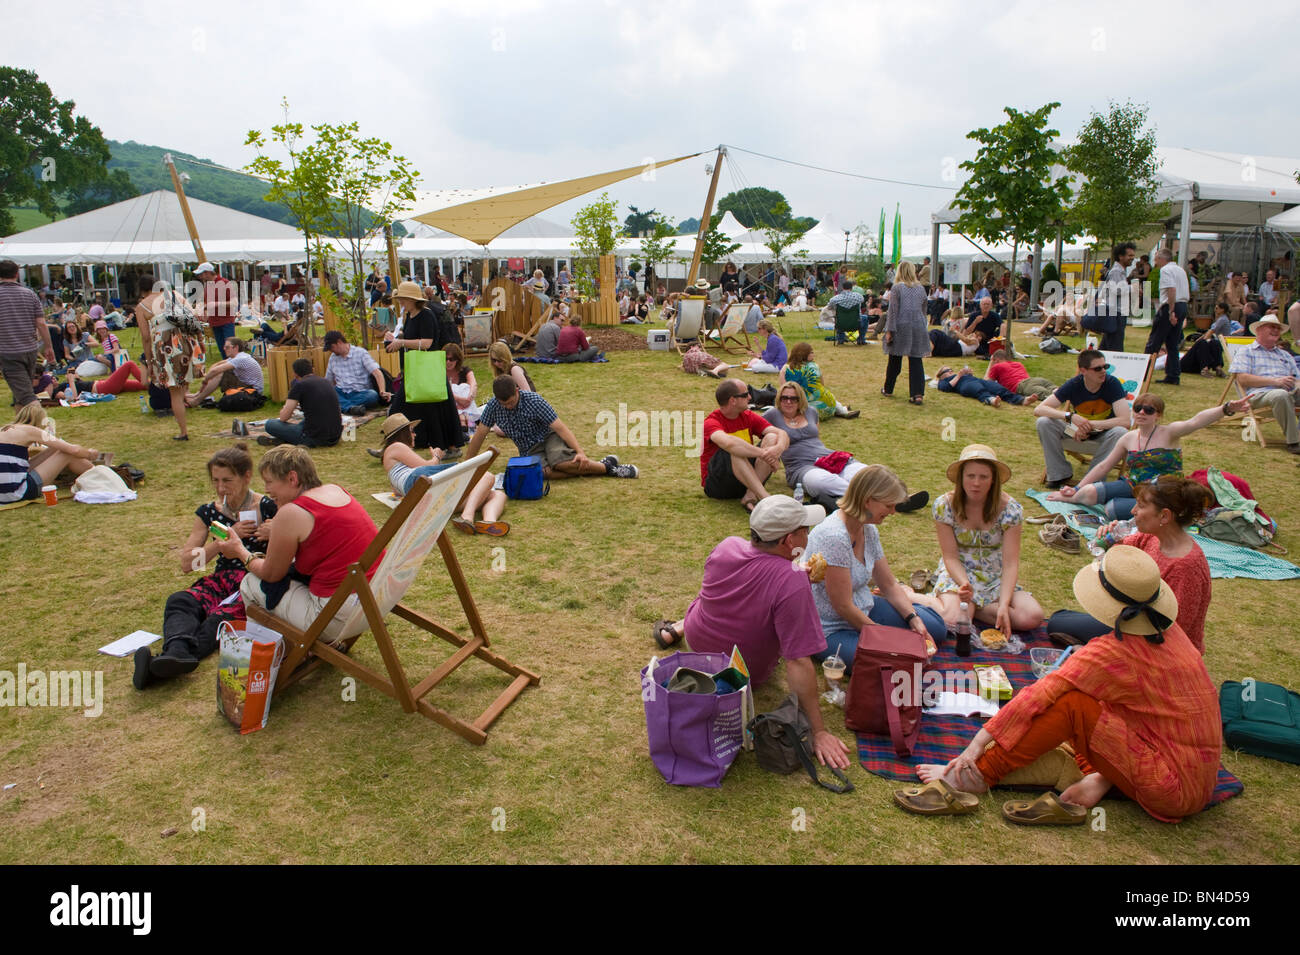 People relaxing on the grass in the summer sunshine at Hay Festival 2010 Hay on Wye Powys Wales UK - Stock Image